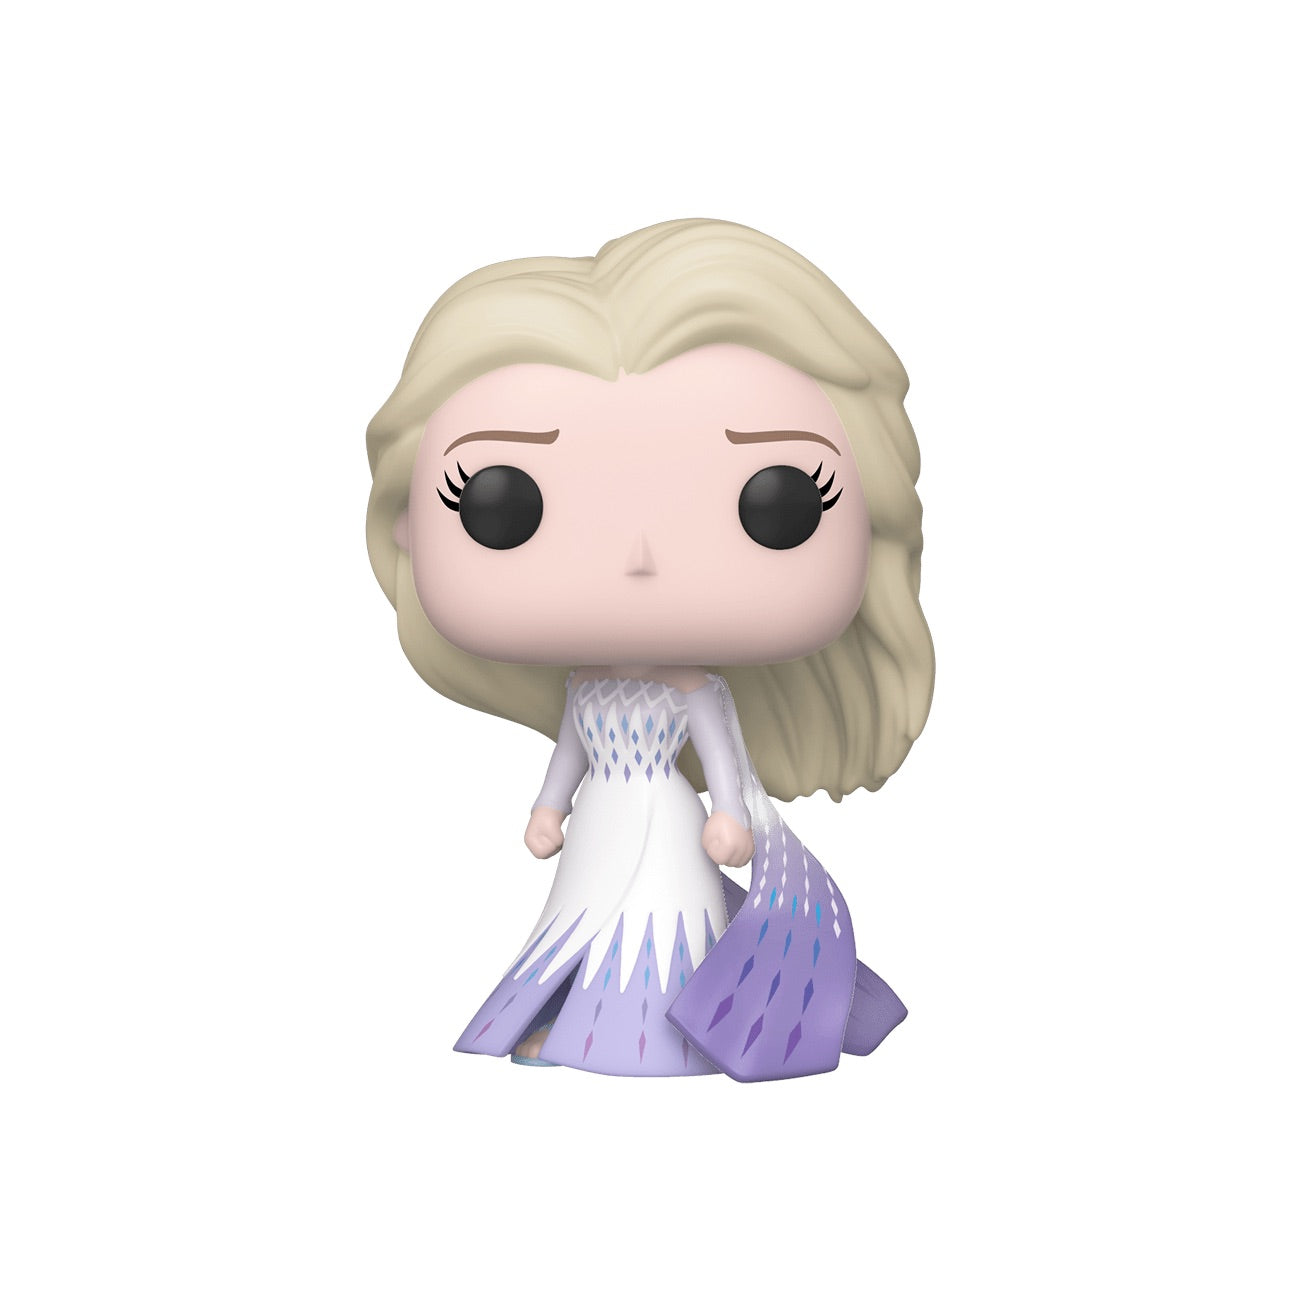 Frozen 2 Elsa Epilogue Dress